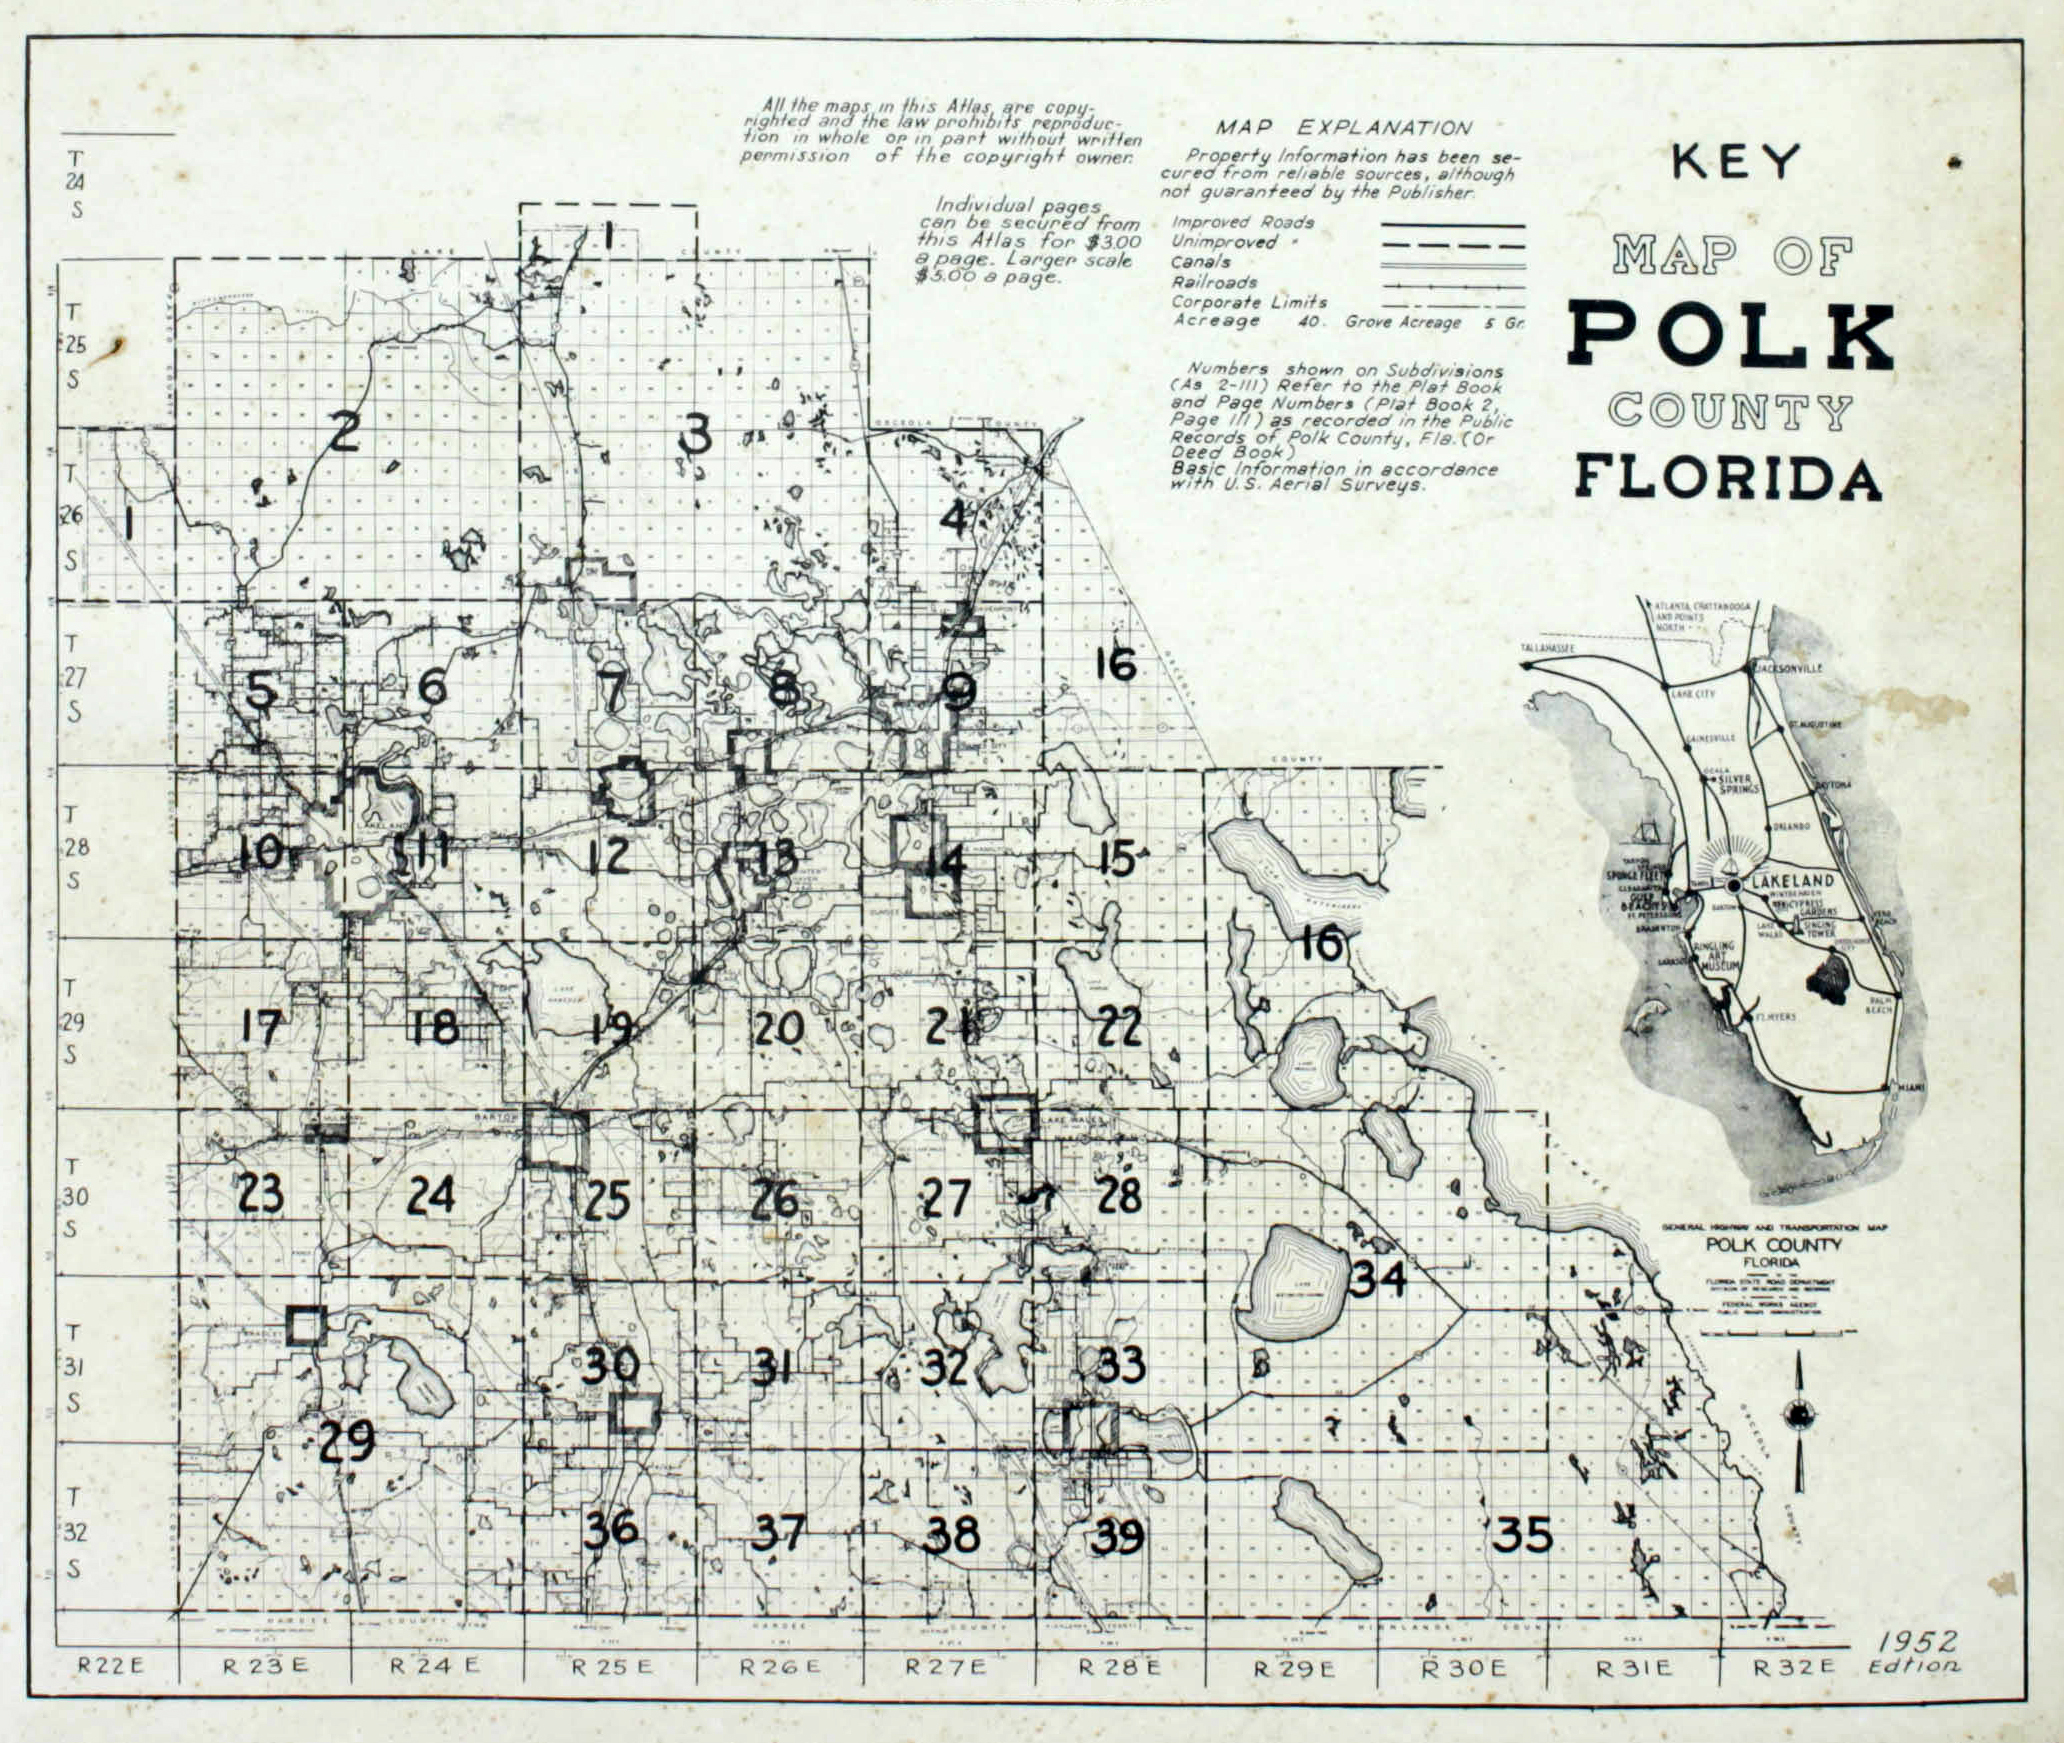 Dolph's 1952 Land Ownership Atlas for Polk County, Florida.